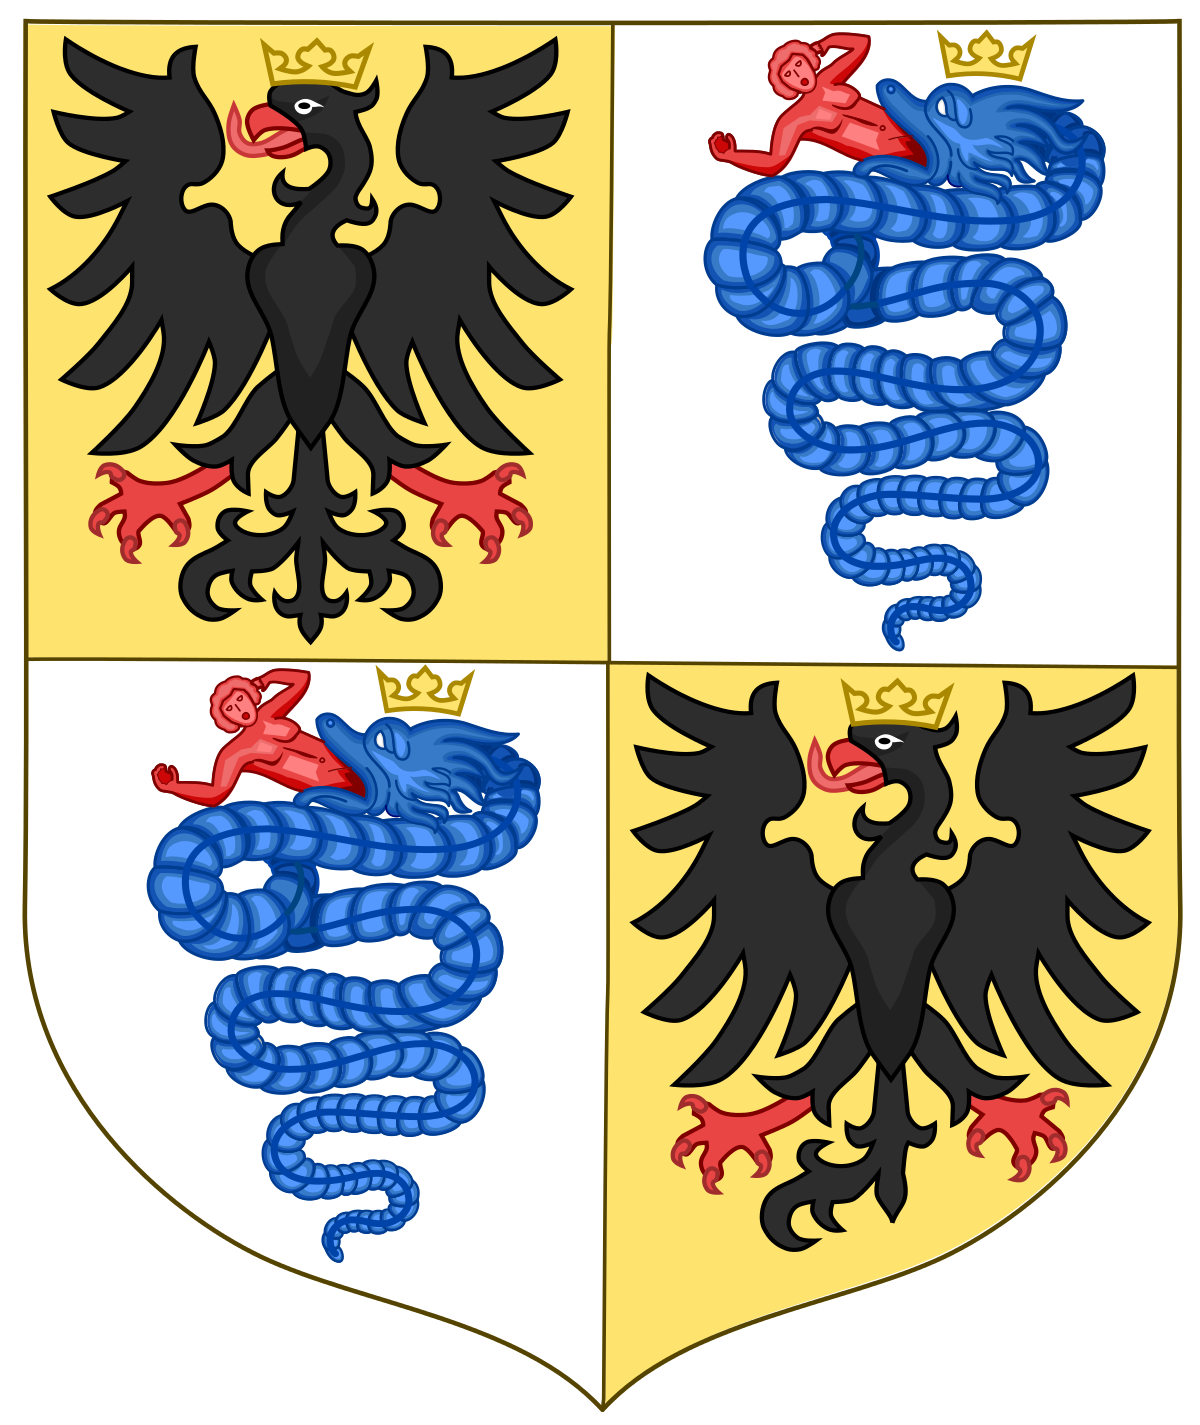 1200px-Arms_of_the_House_of_Sforza.png